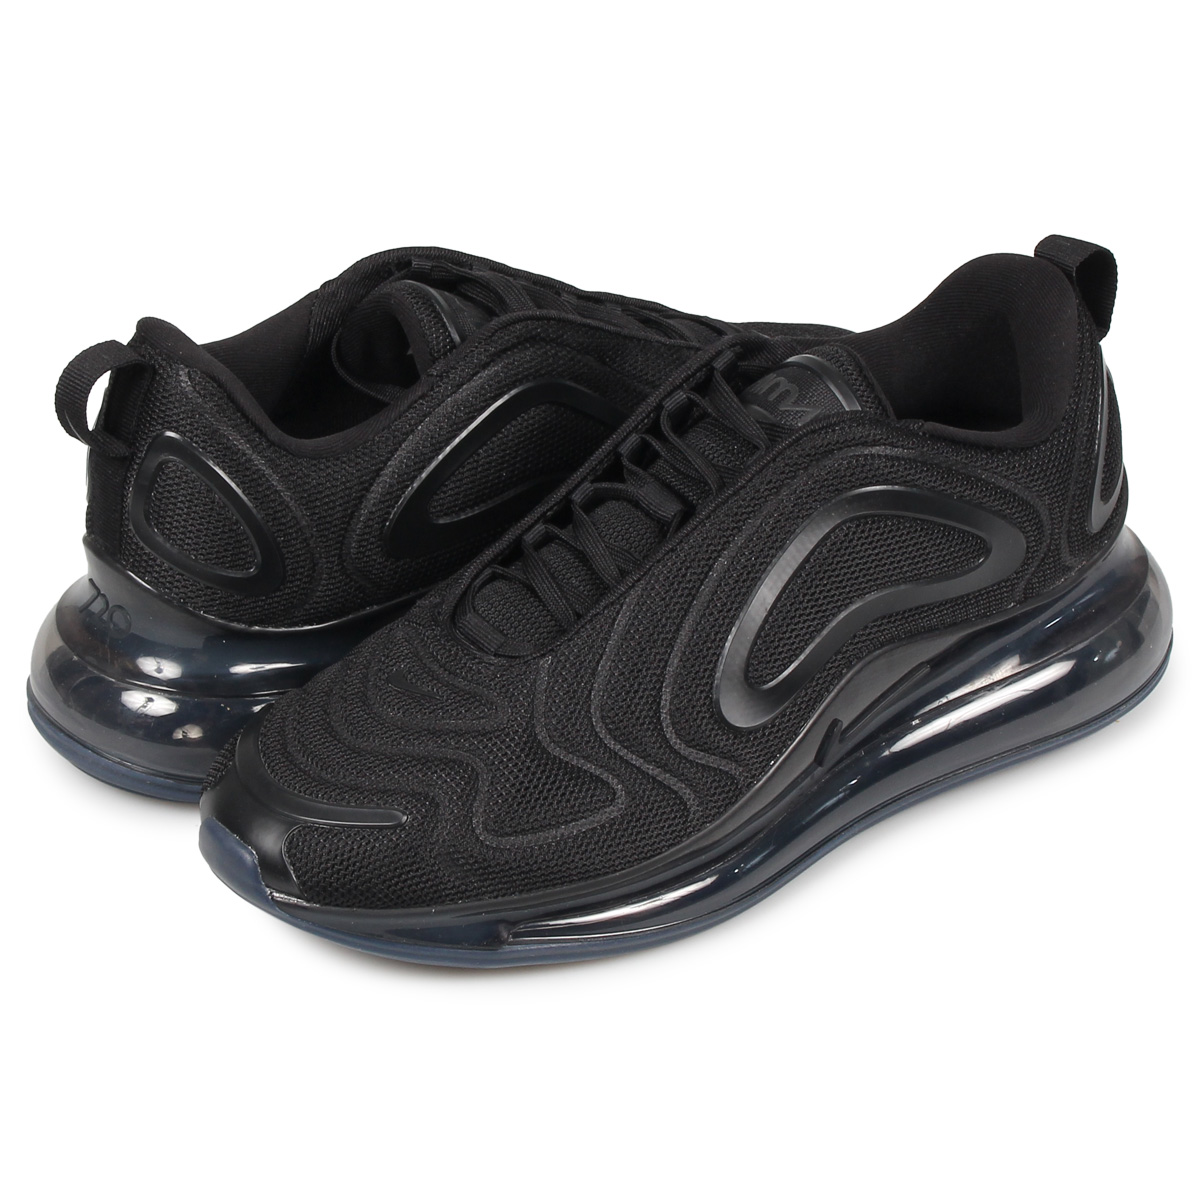 Men's Air Max 720 Low Top Sneakers in 2019 | Air max, Nike